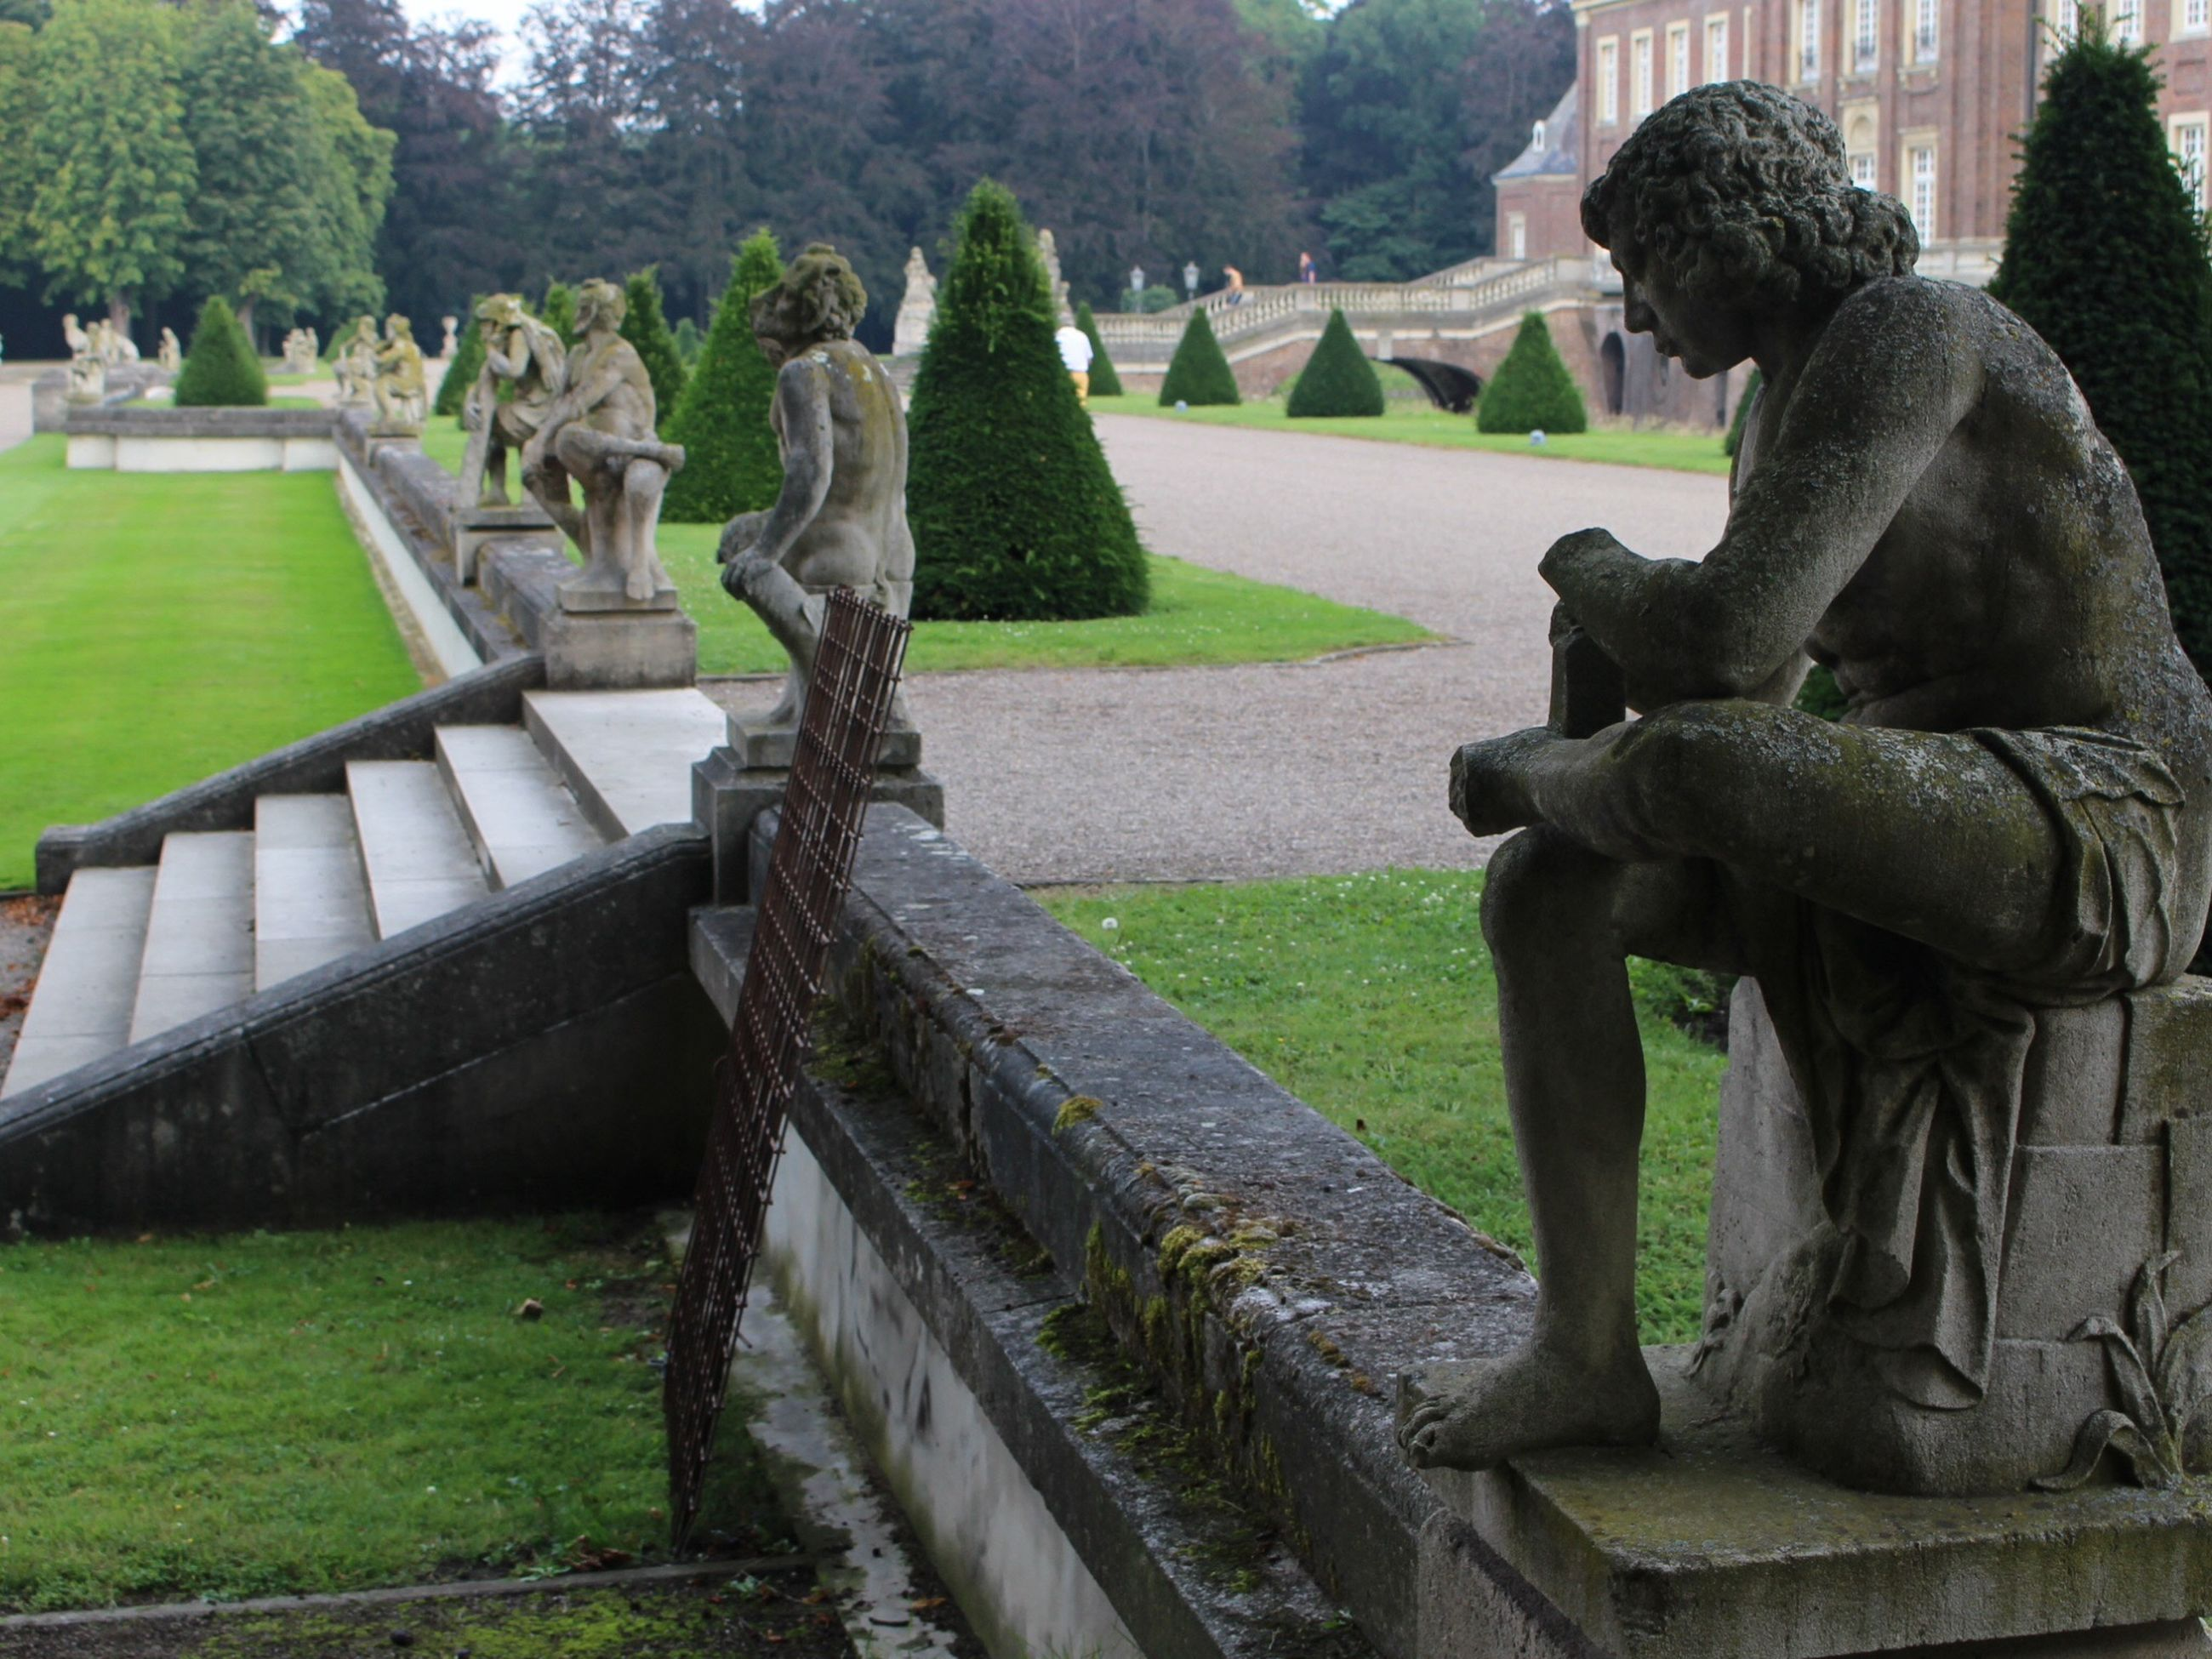 statue, sculpture, human representation, art, art and craft, creativity, grass, history, famous place, stone material, park - man made space, monument, built structure, memorial, travel destinations, cemetery, green color, carving - craft product, formal garden